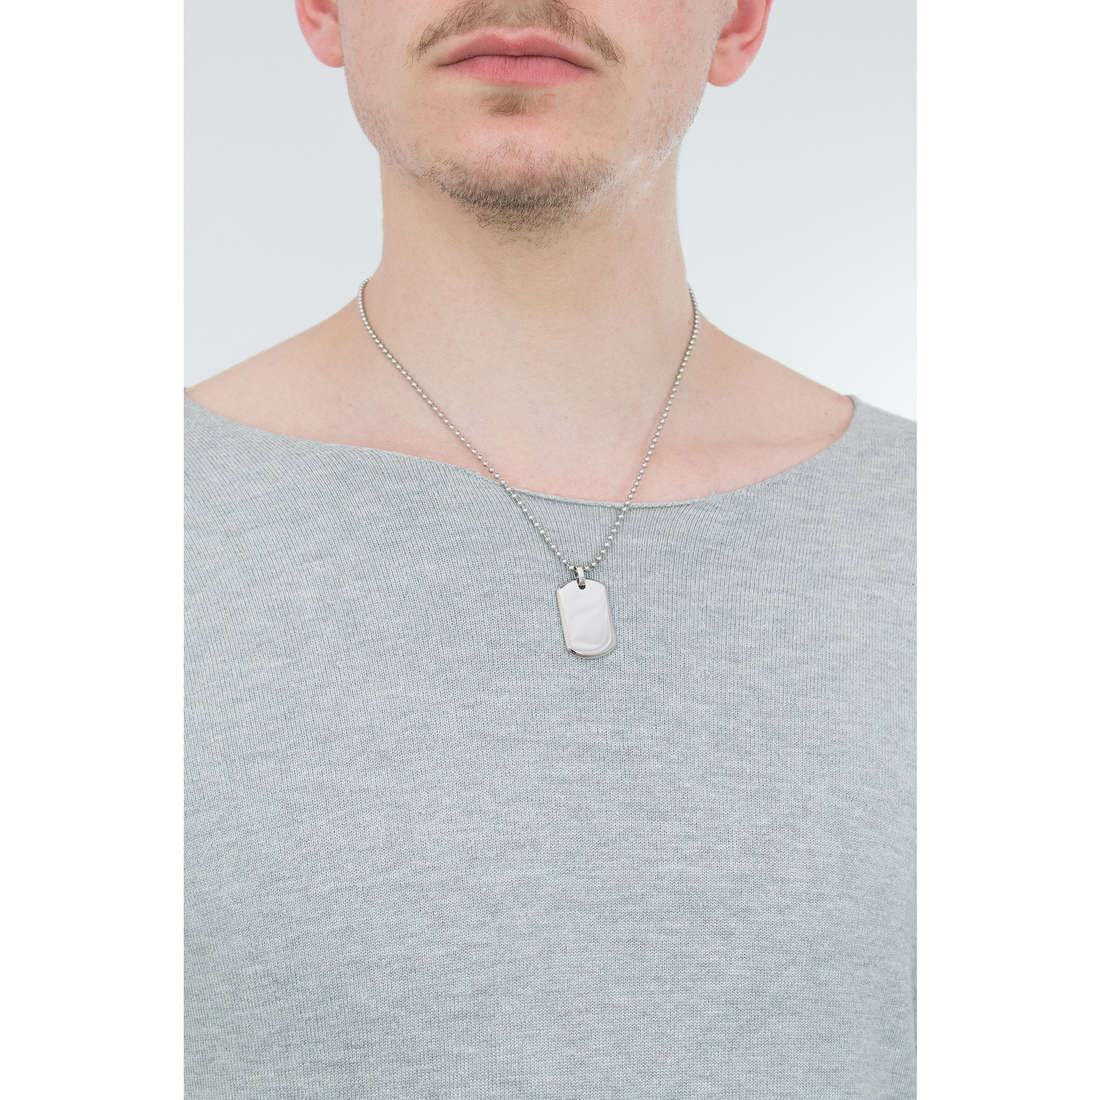 Morellato necklaces Cross man SAHU03 indosso